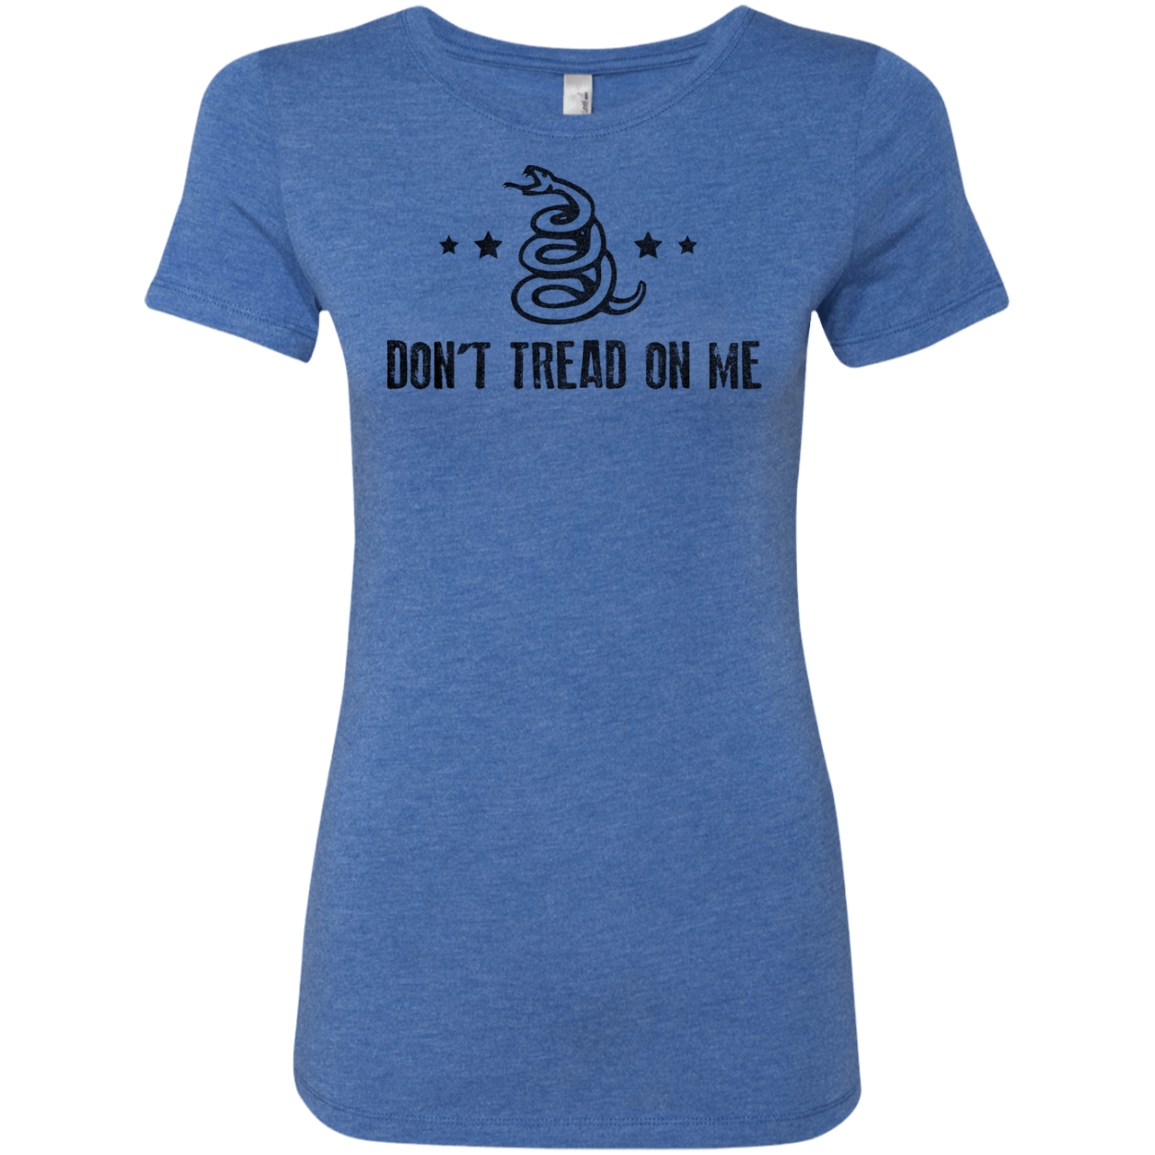 Don't Tread on Me Women's Classic Tee